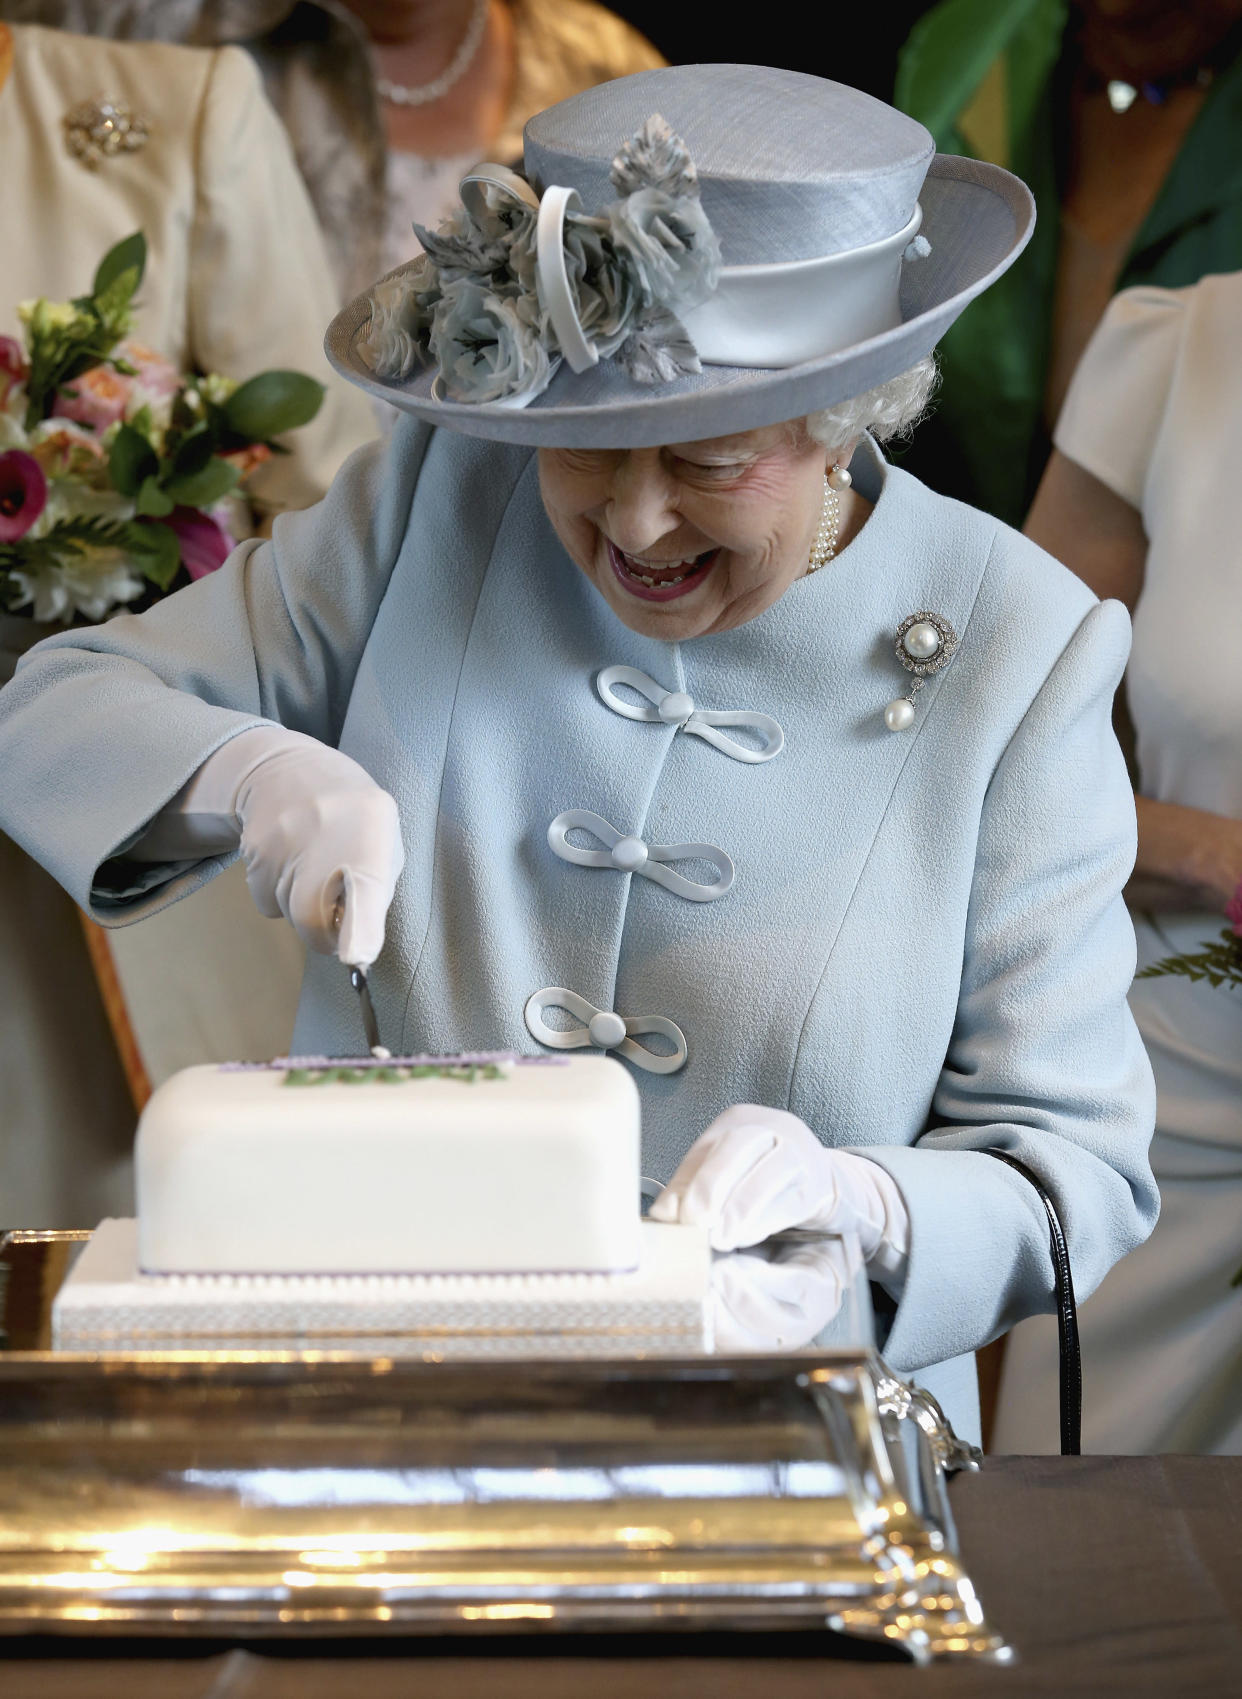 Britain's Queen Elizabeth cuts a Women's Institute Celebrating 100 Years cake, at the centenary annual meeting of The National Federation Of Women's Institute, at the Royal Albert Hall in London, Britain June 4, 2015.   REUTERS/Chris Jackson/pool